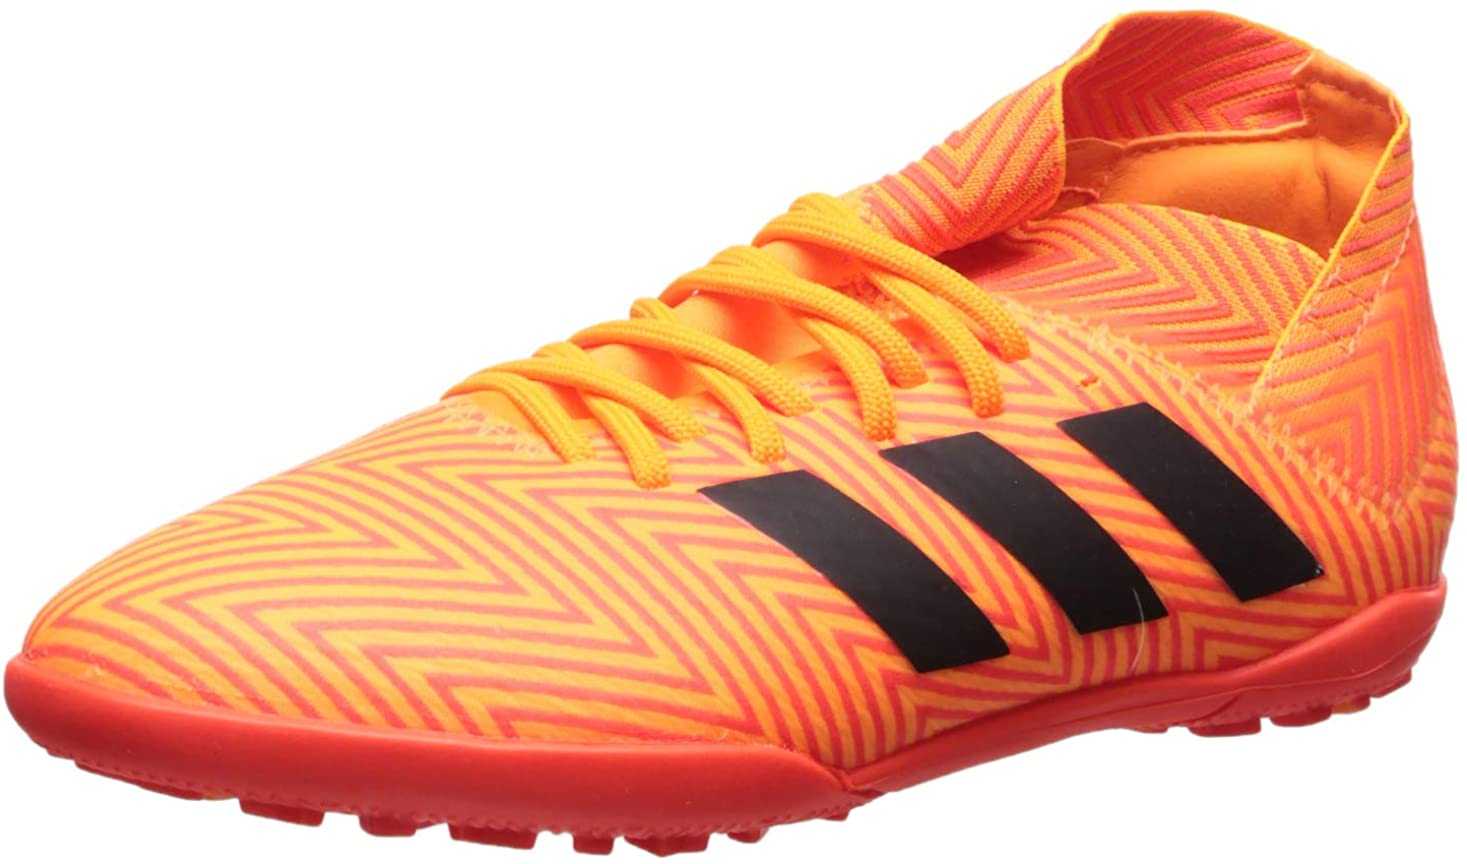 adidas Unisex-Kid's Nemeziz Tango 18.3 TF J Running Shoe, Zest/core Black/Solar red, 12K M US Big Kid